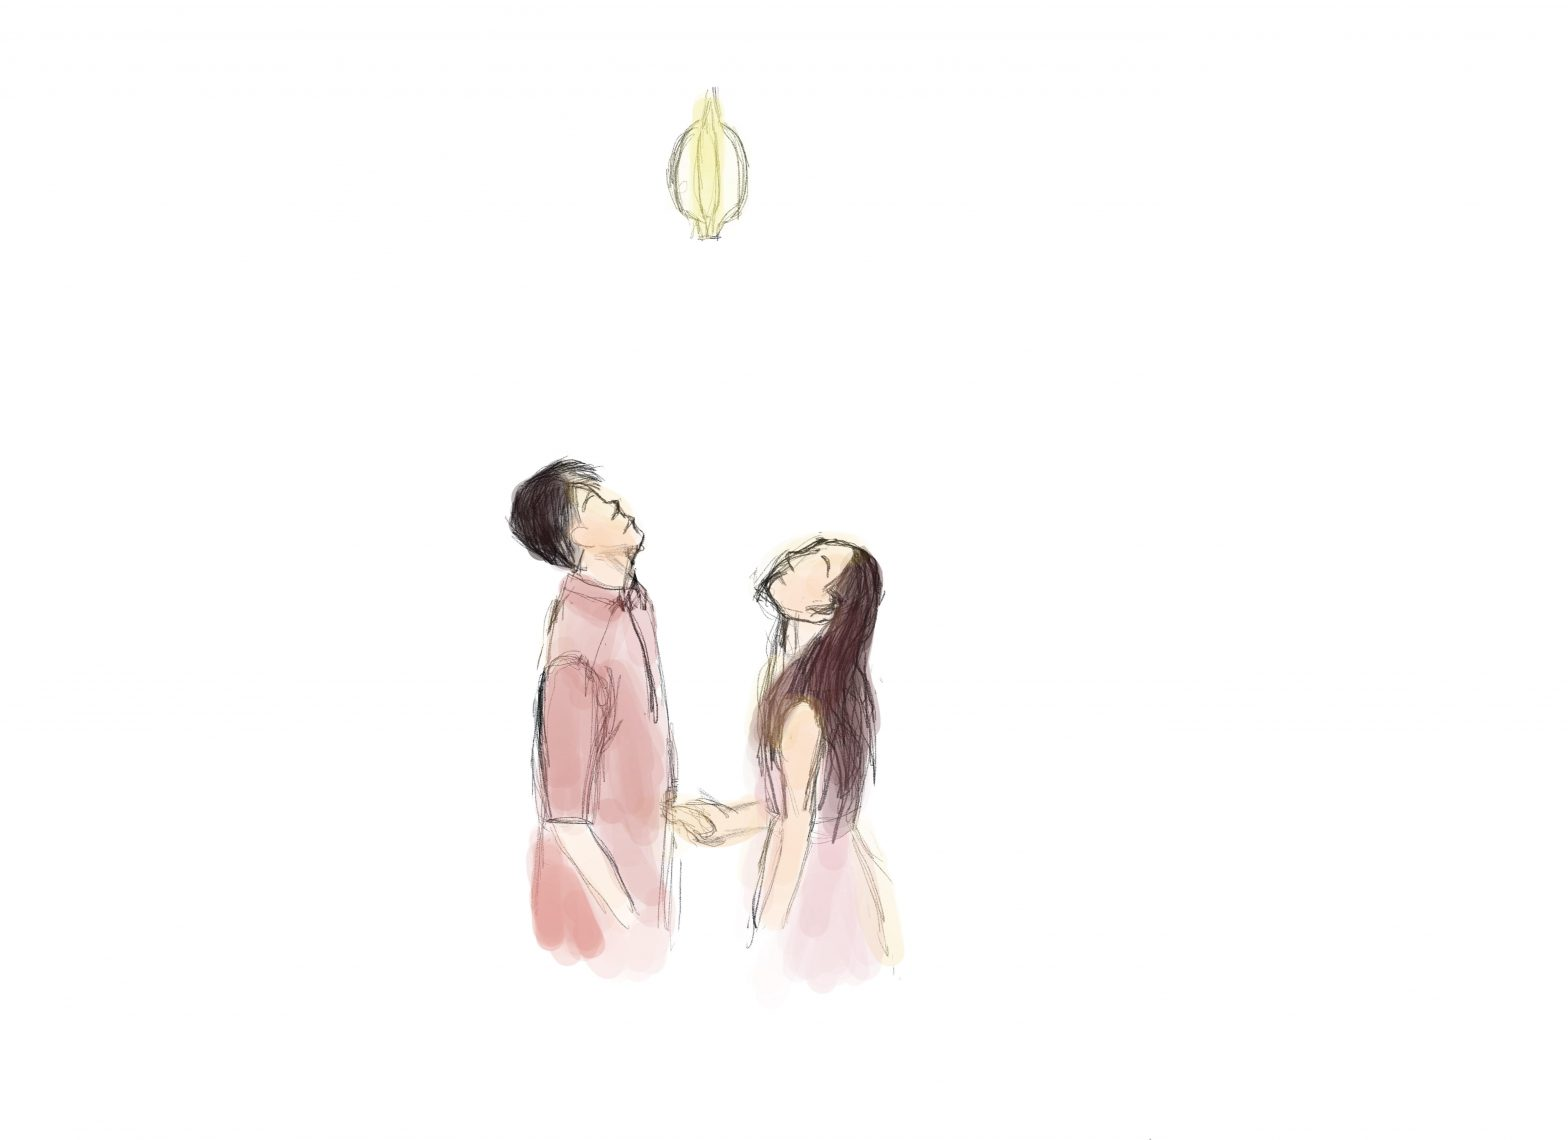 drawing of sean lew and kaycee rice world of dance